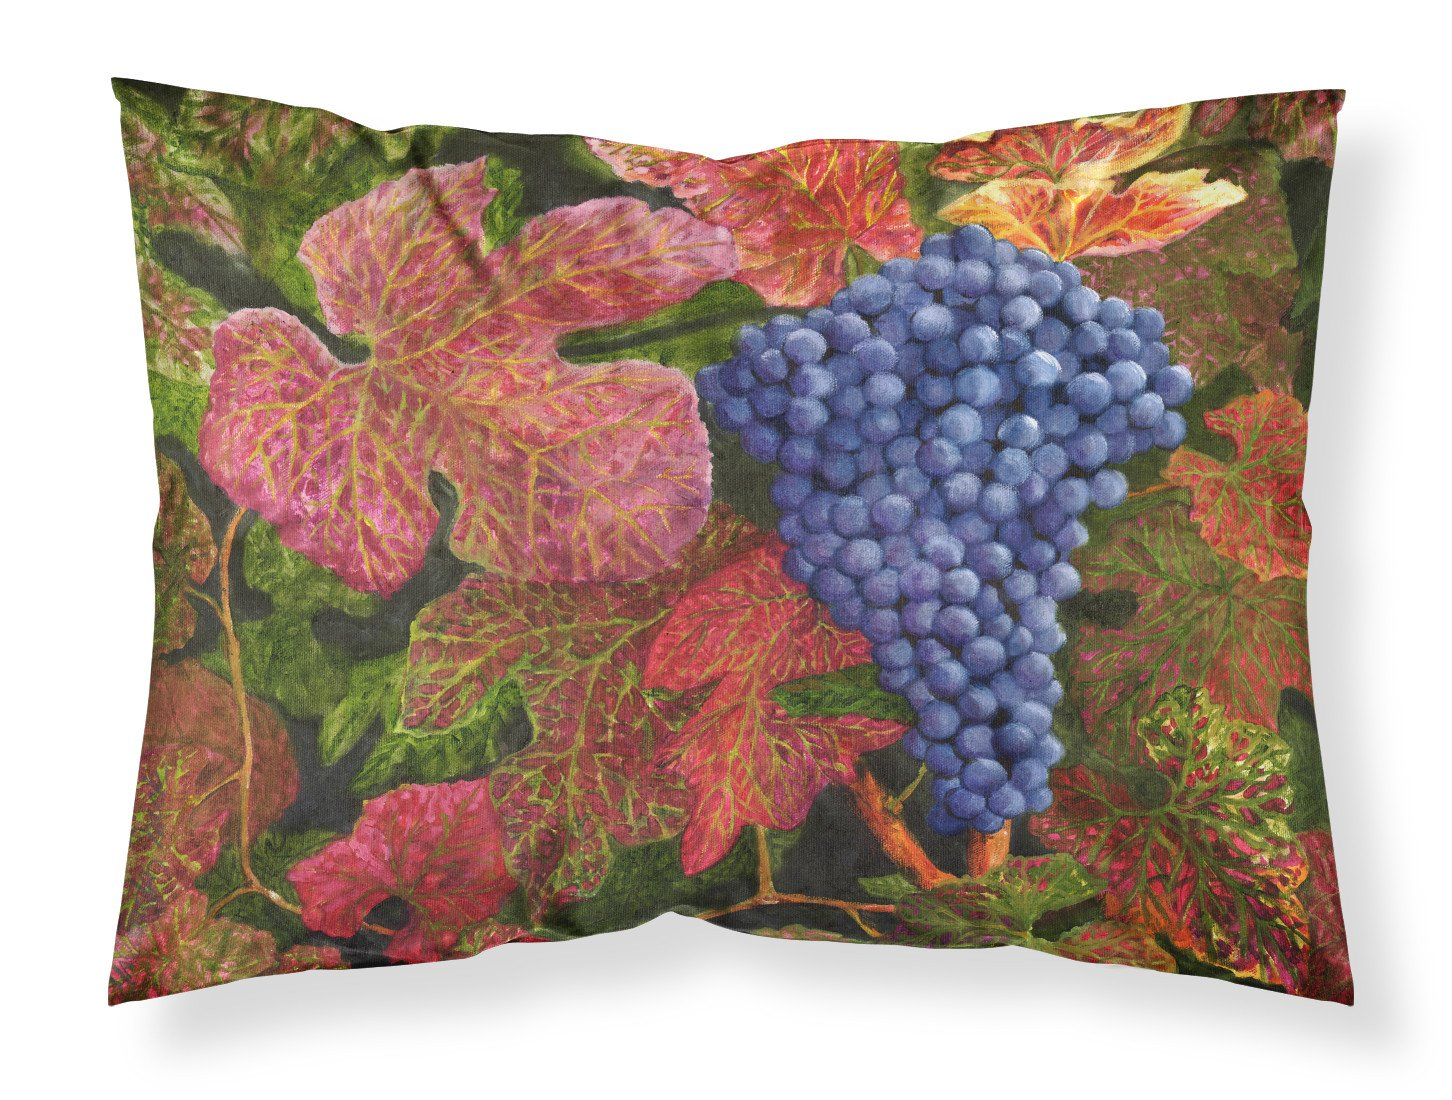 Grapes Of Joy by Malenda Trick Fabric Standard Pillowcase TMTR0151PILLOWCASE by Caroline's Treasures